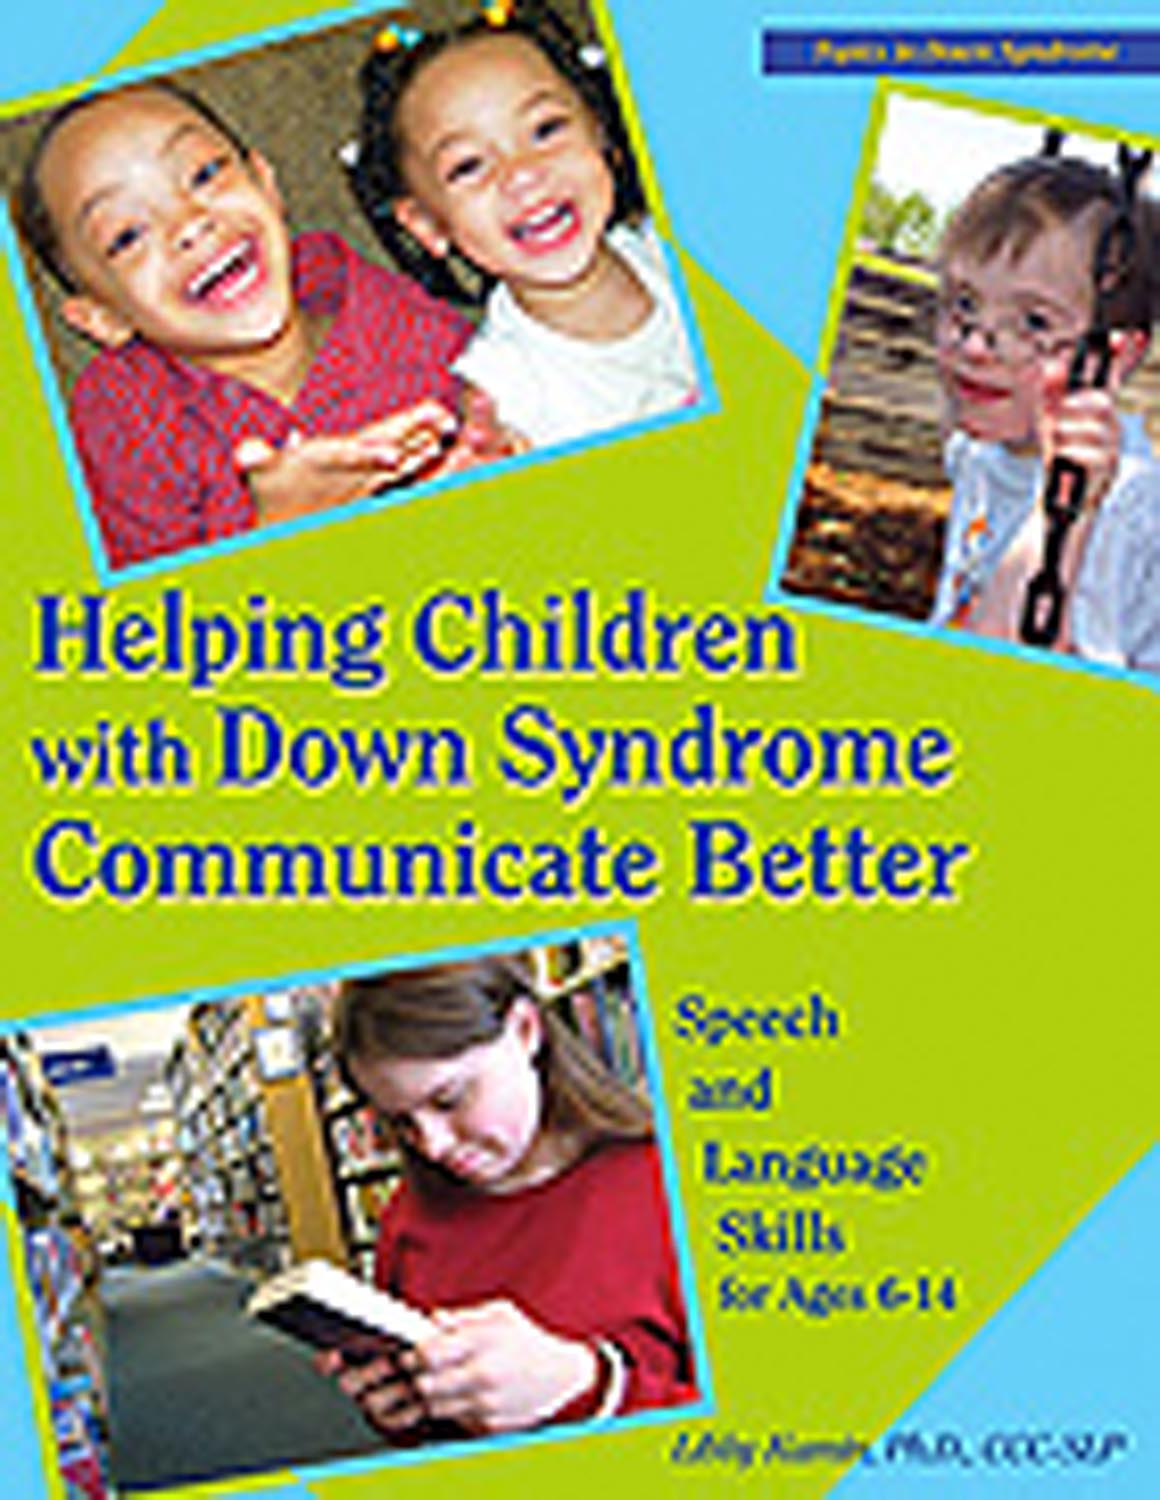 Topics in Down Syndrome - Helping Children with Down Syndrome Communicate Better - Speech and Language Skills for Ages 6 - 14 Image